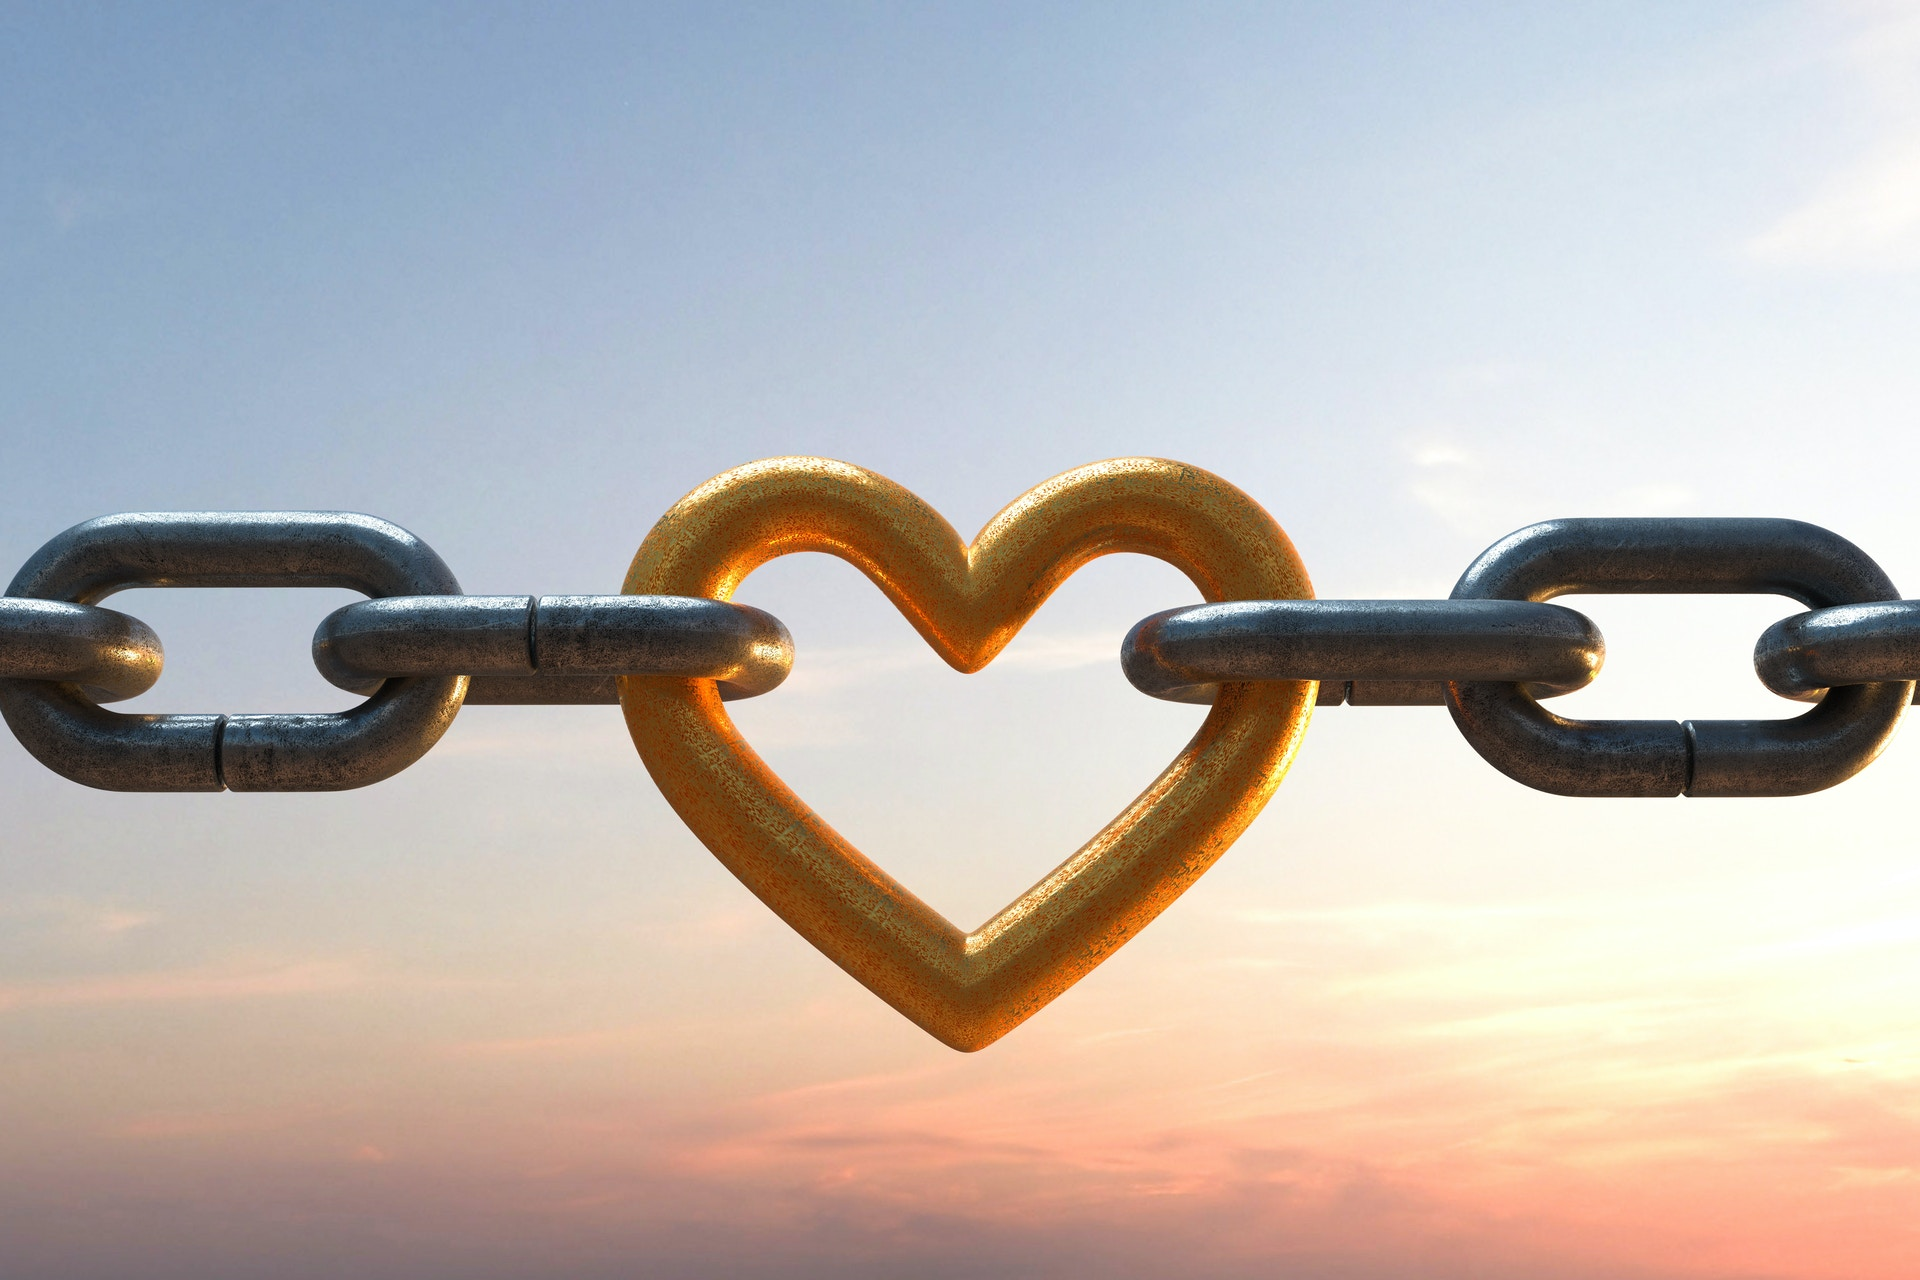 A heart on a chain